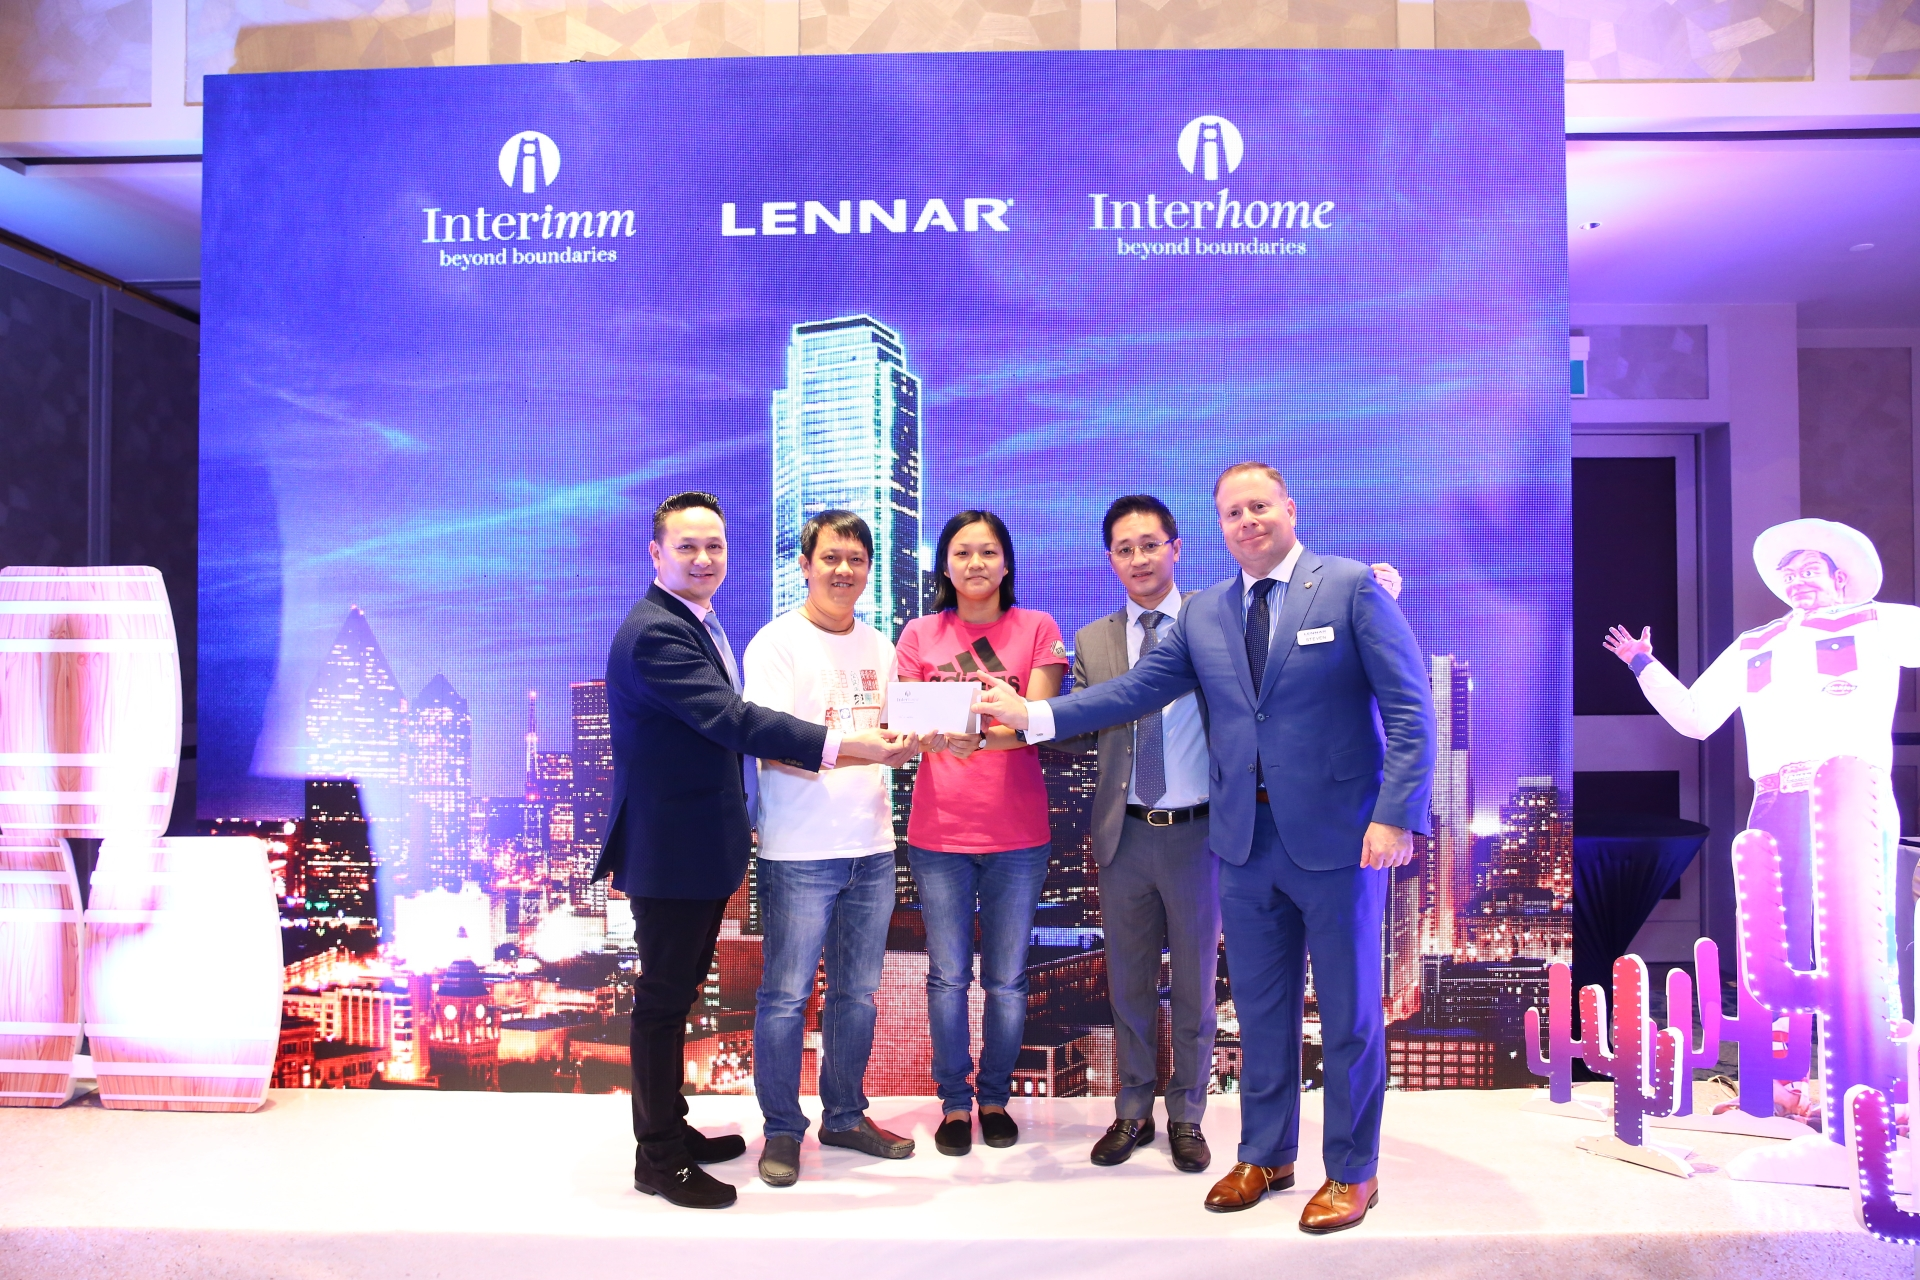 lennar international introduces us properties to vietnamese customers